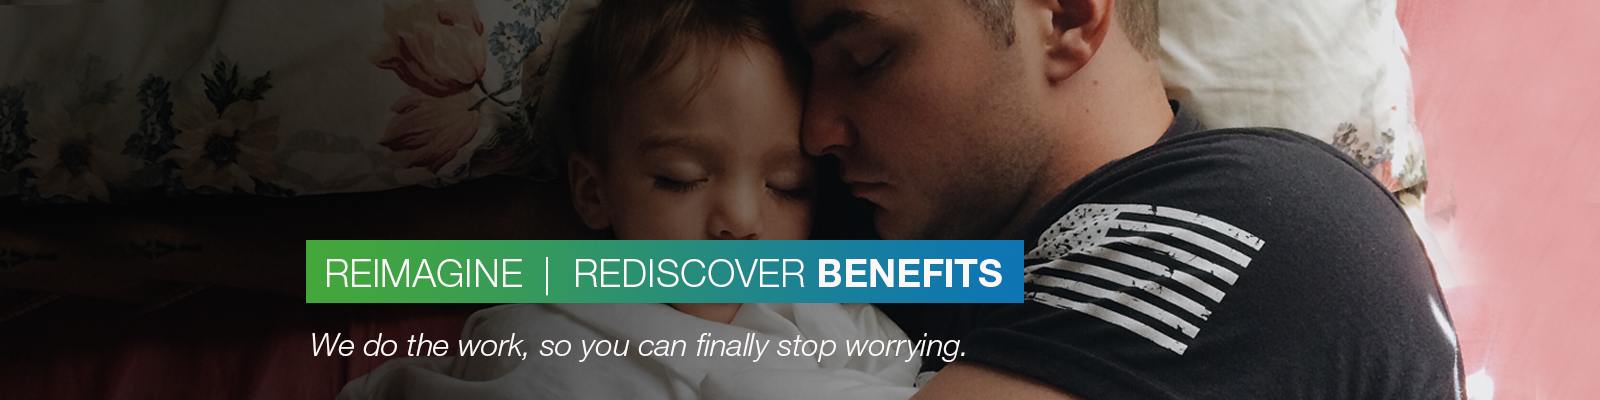 REIMAGINE | REDISCOVER BENEFITS: We do the work, so you can finally stop worrying.